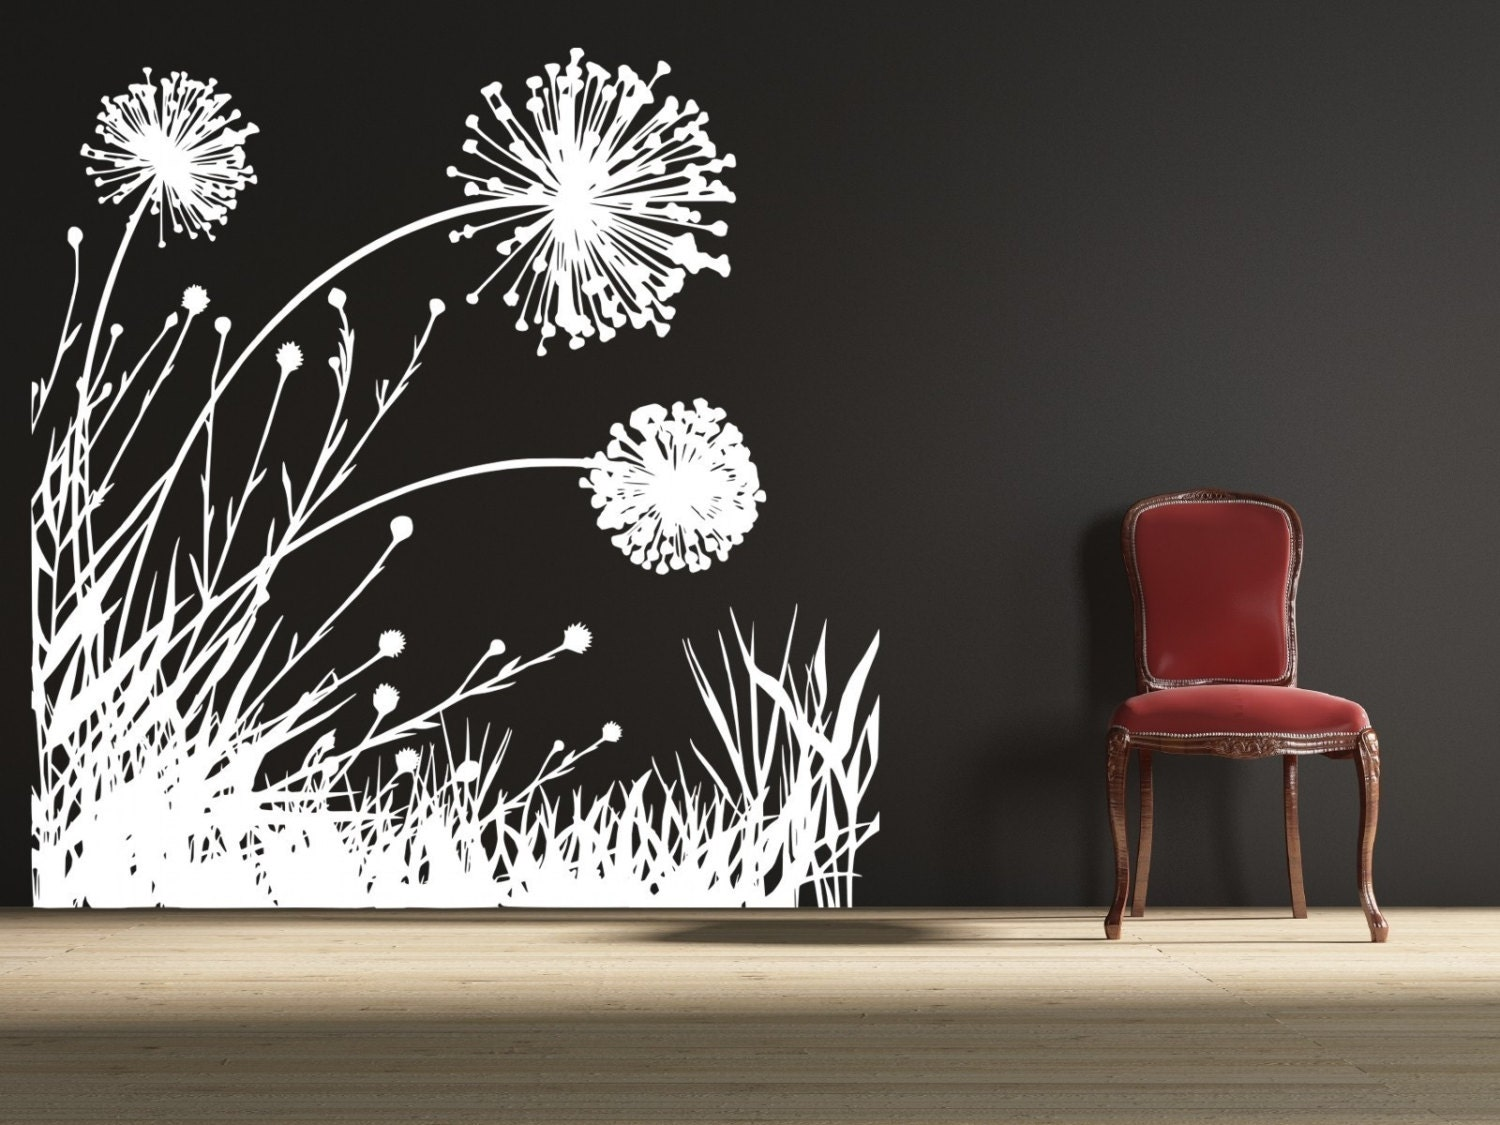 Dandelion wall decal floral wall decal dandelion a154 for Decor mural wall art